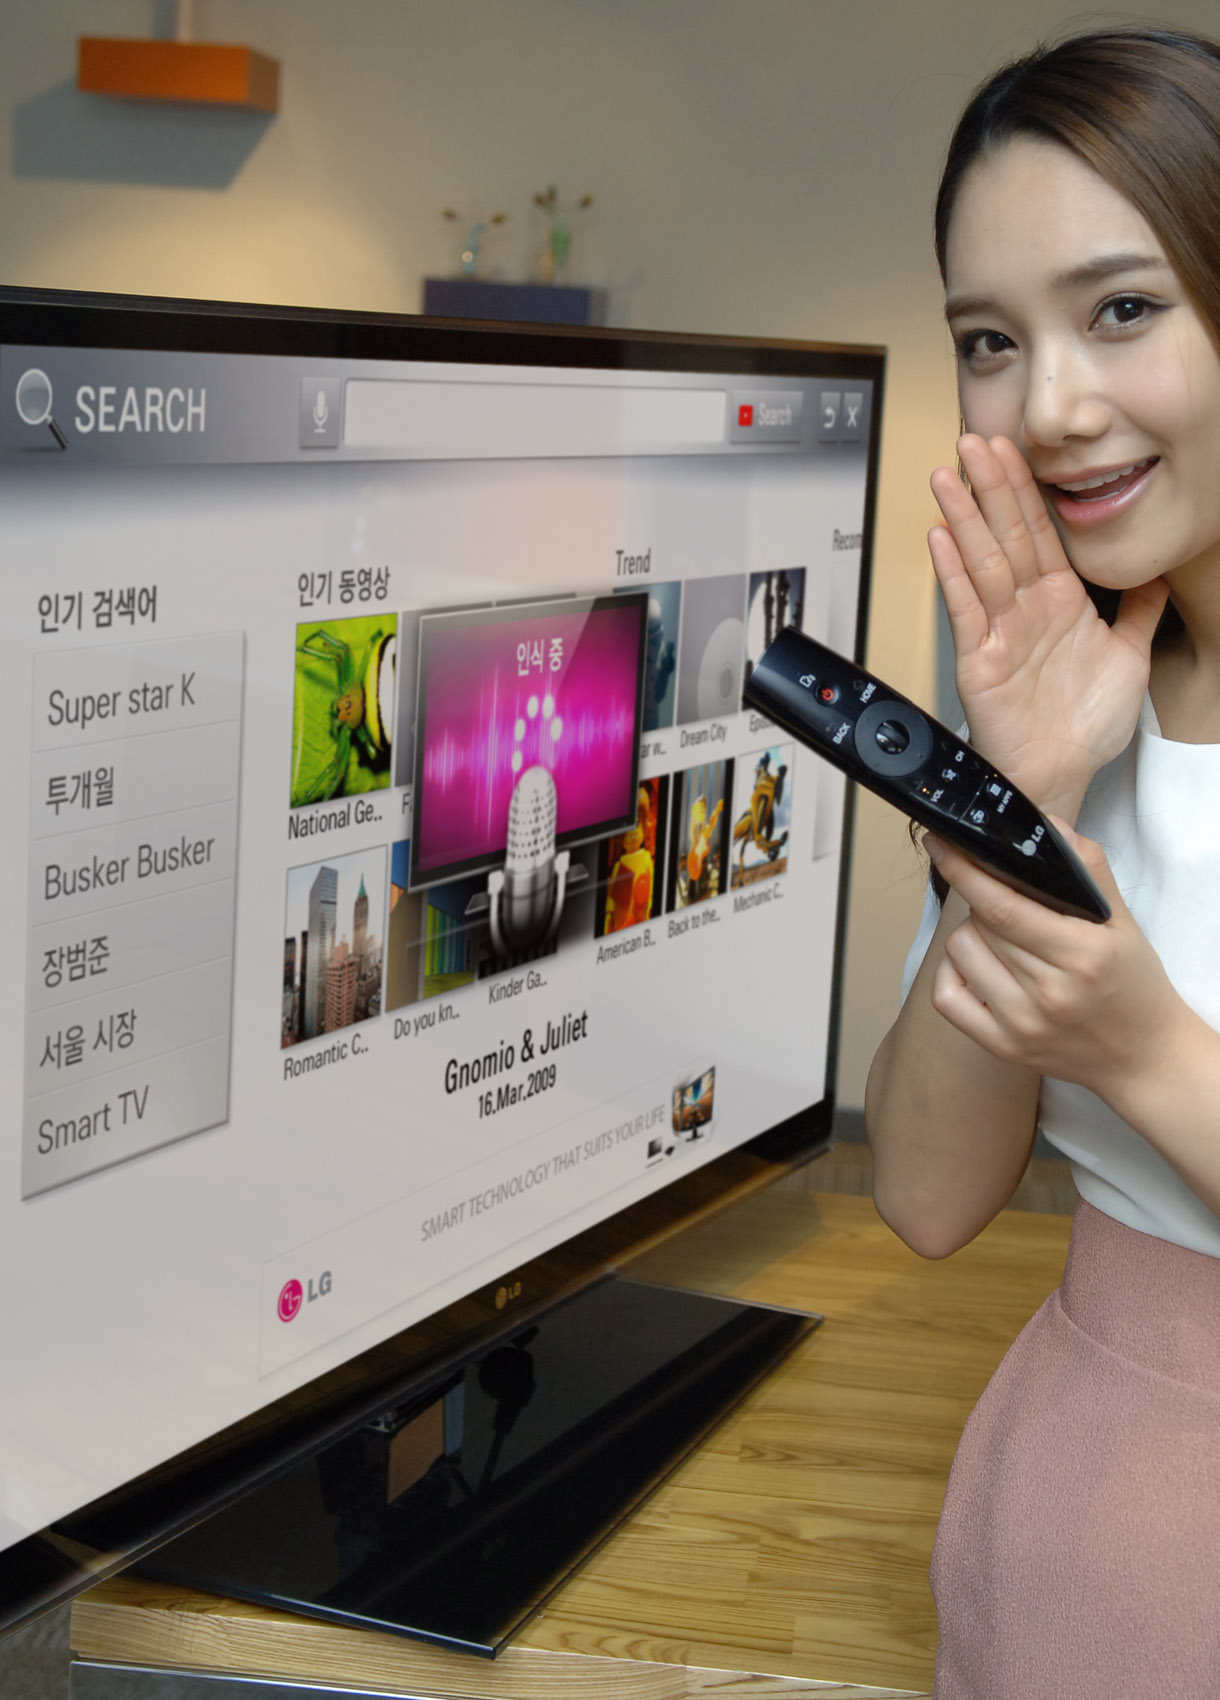 LG'S NEW MAGIC REMOTE ADDS INNOVATIVE FUNCTIONS TO ENHANCE